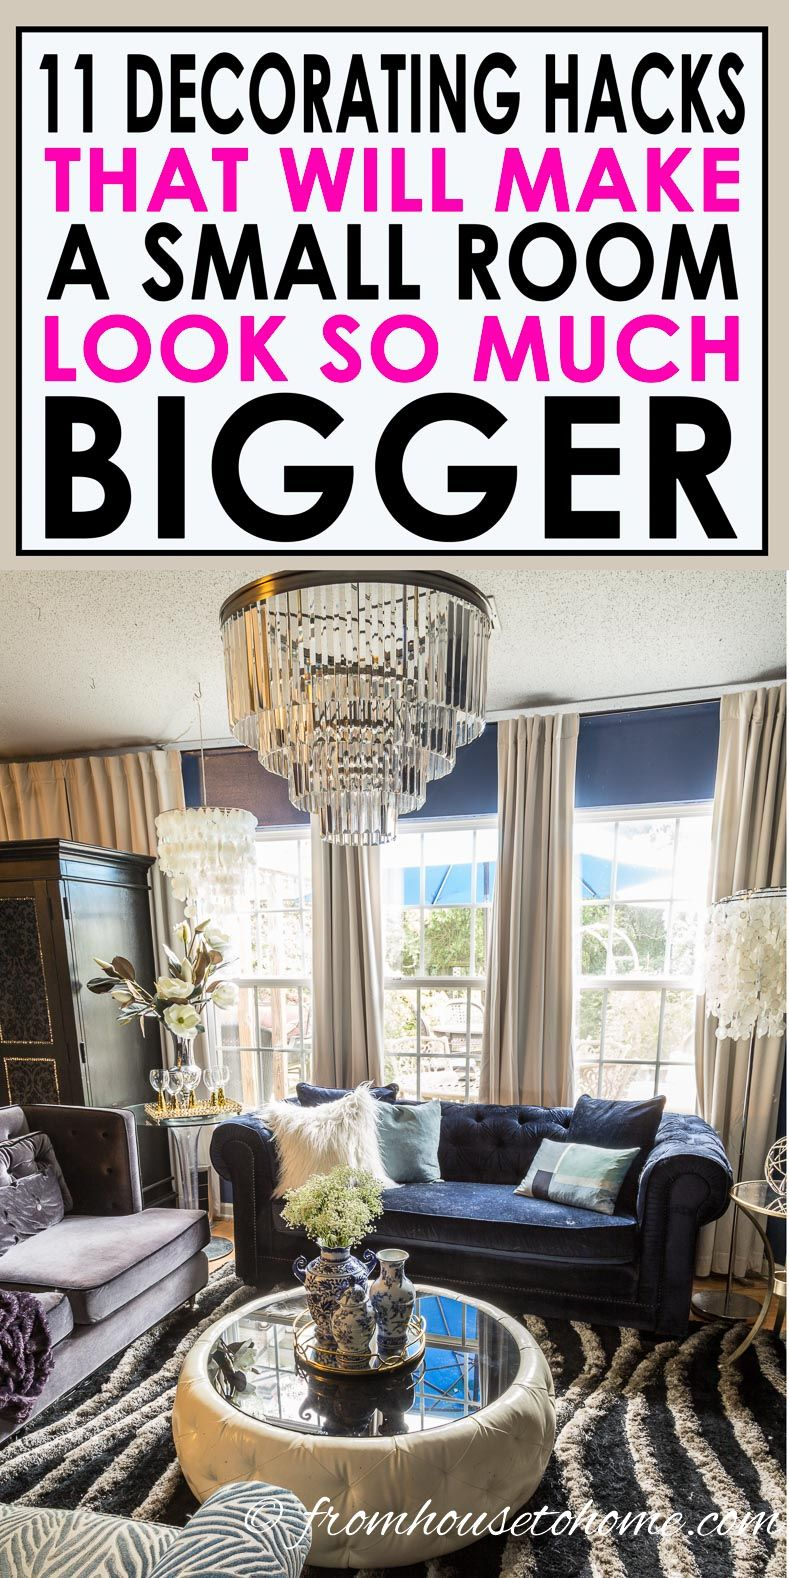 How To Make A Small Room Look Bigger 20 Small Space Decora